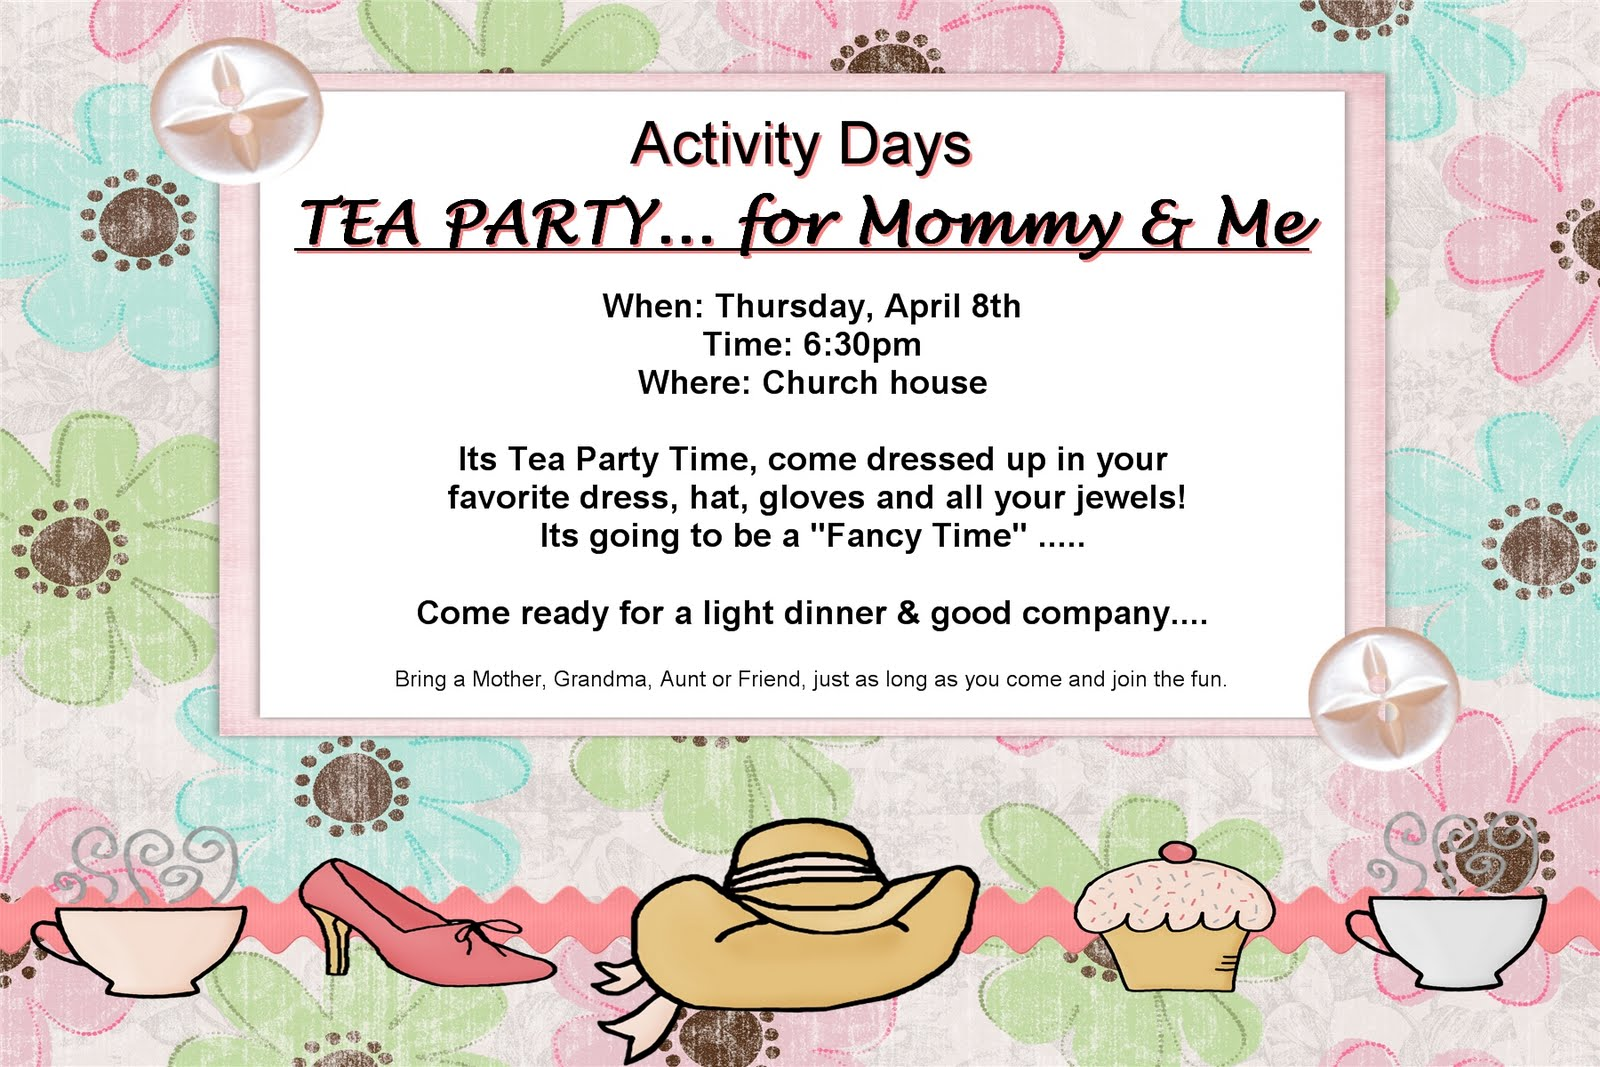 Lds Activity Day Ideas Its A Tea Party Mommy And Me Style